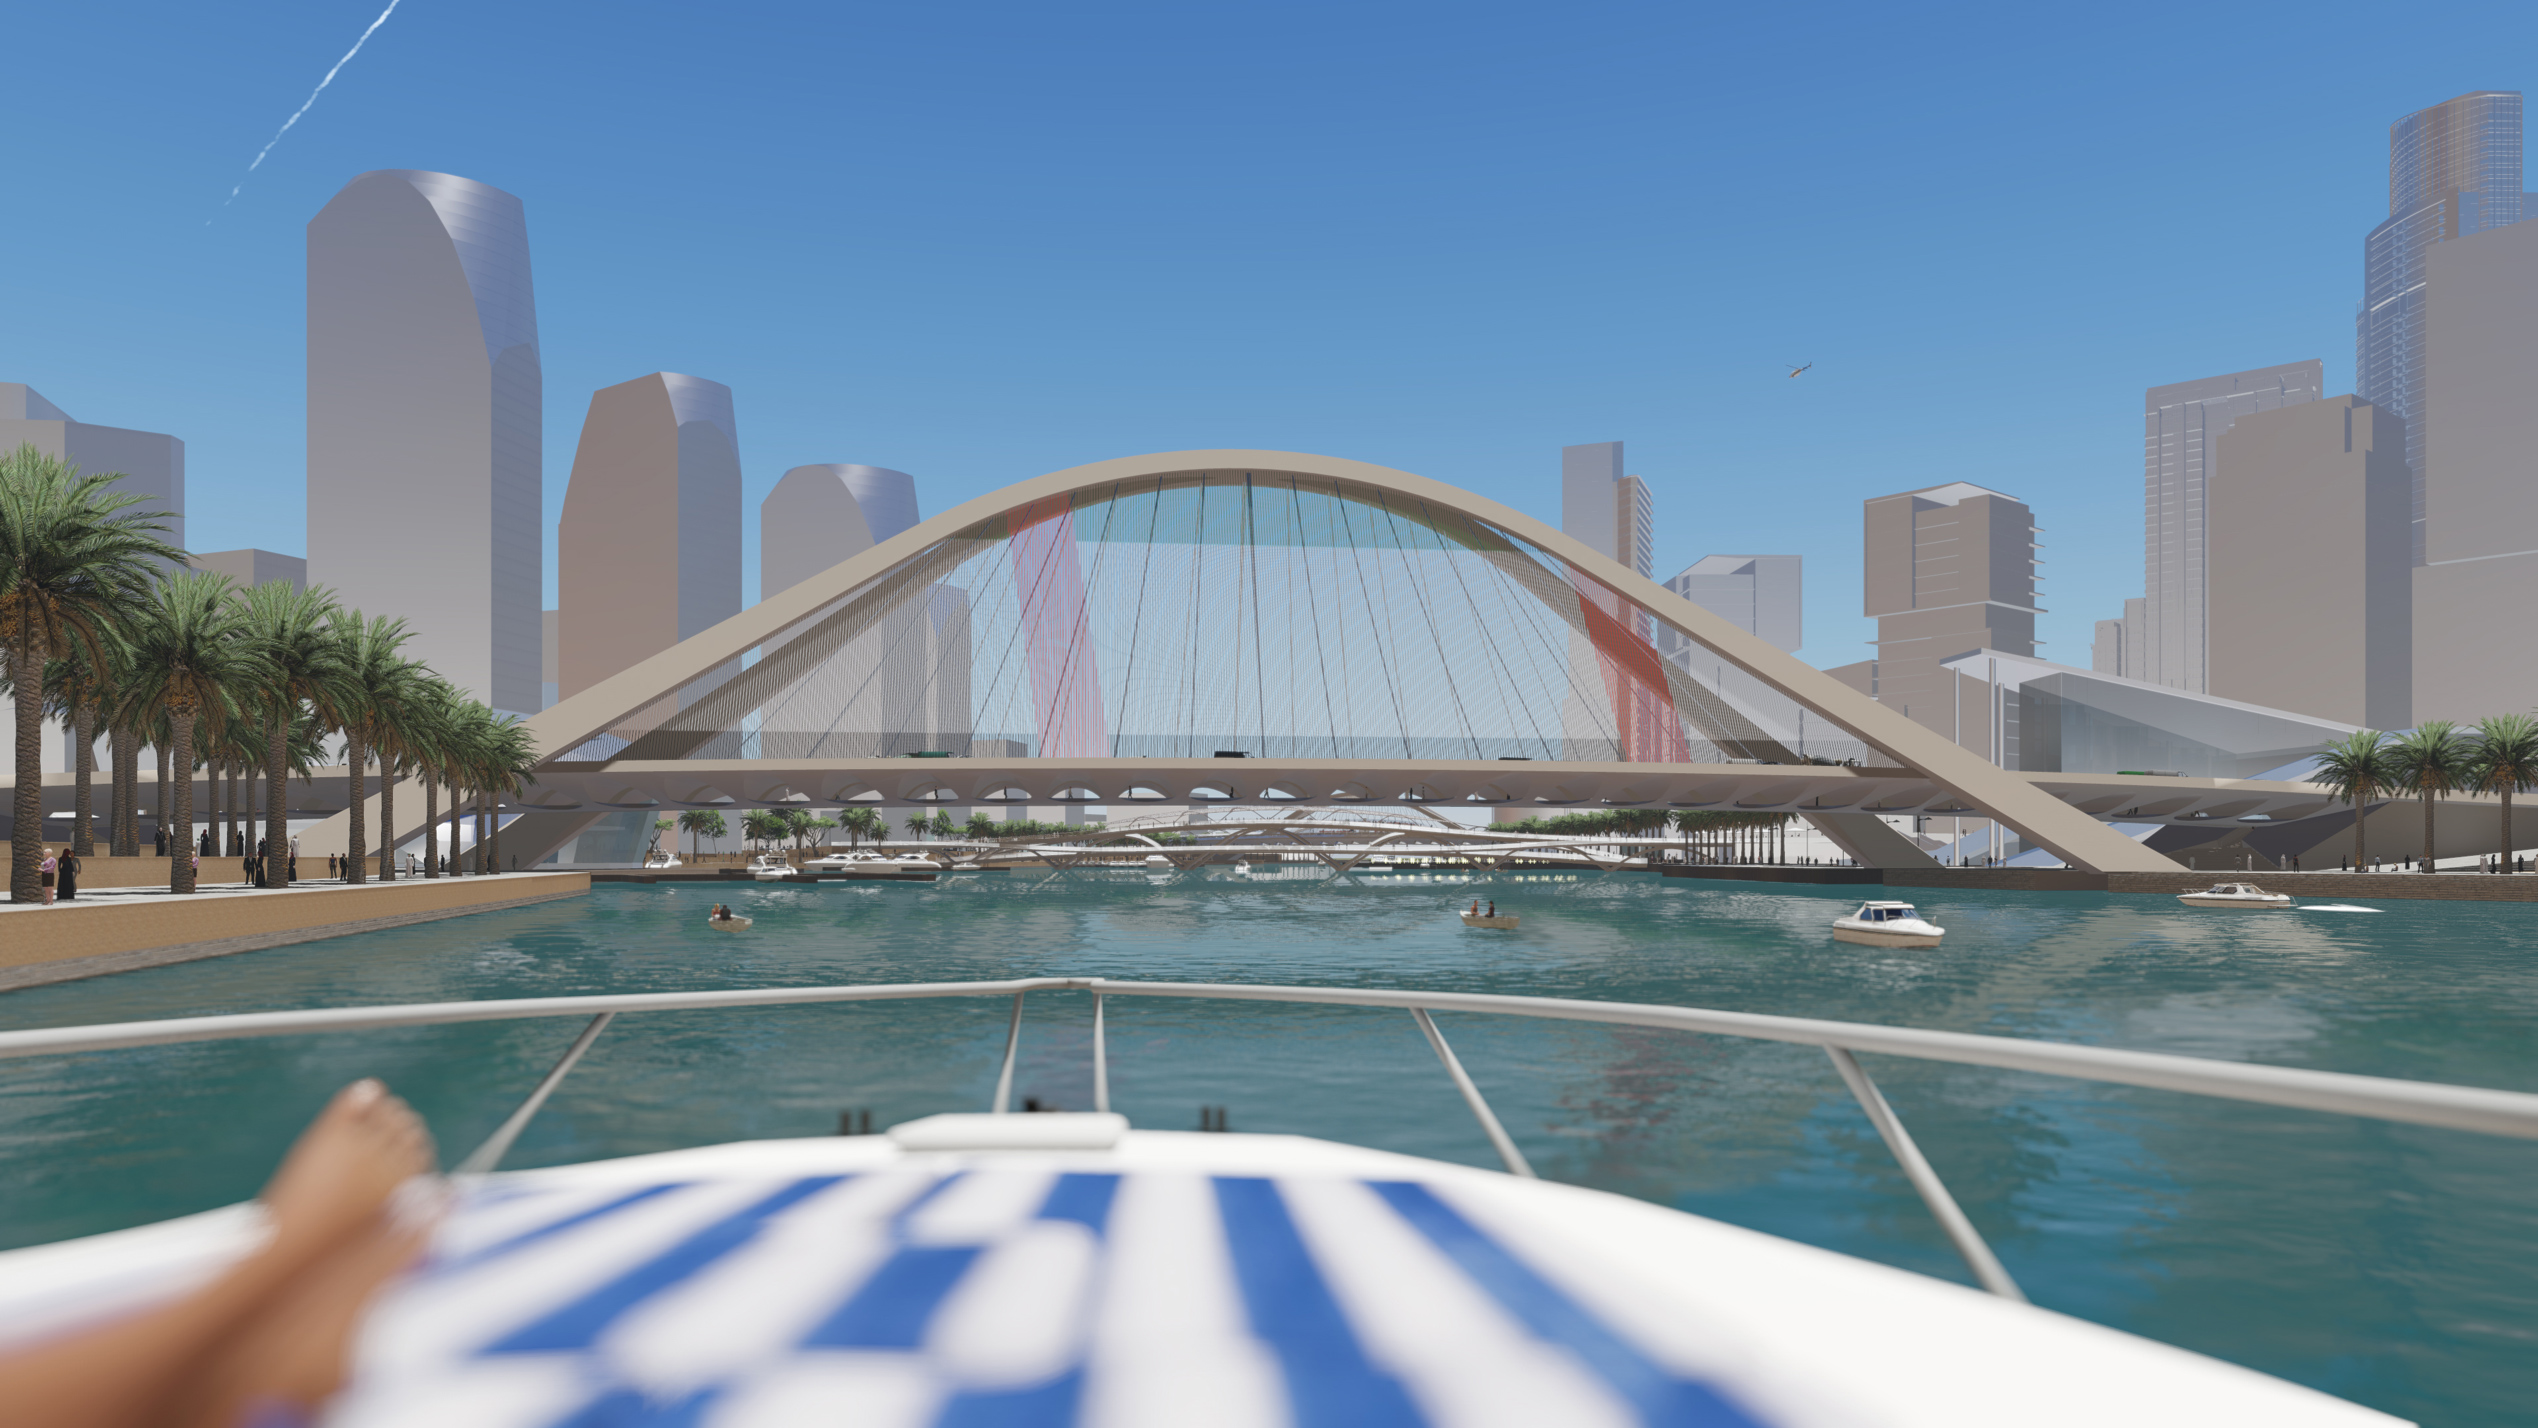 Boogbruggen Dubai Creek Harbour